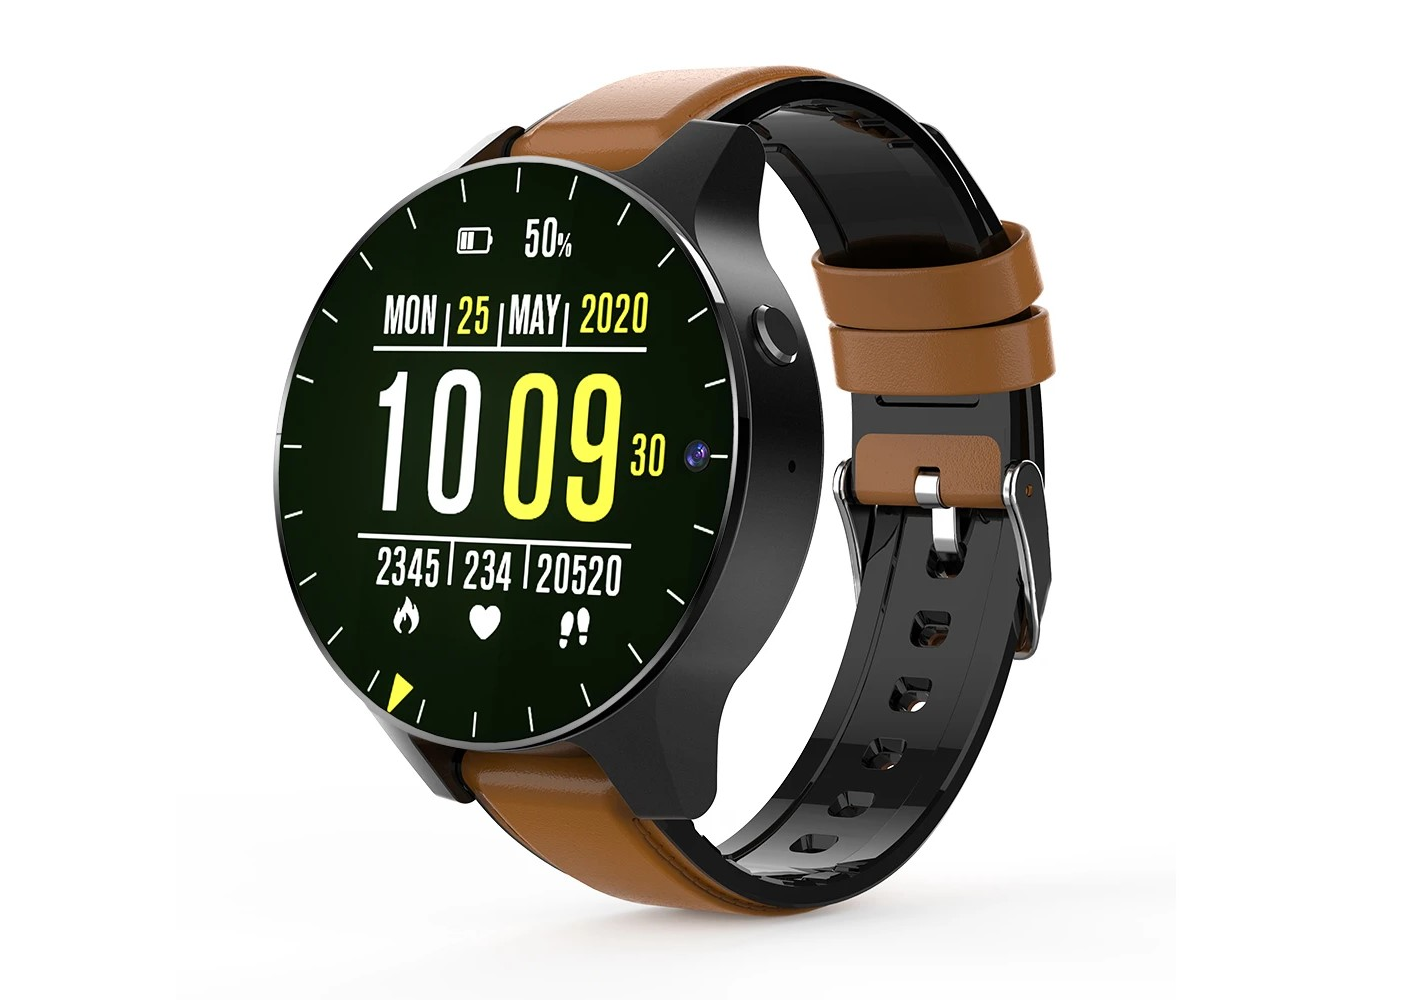 Rollme's latest smartwatch boasts 4G/LTE, a bezel-free display and a relatively massive 1,600mAh battery